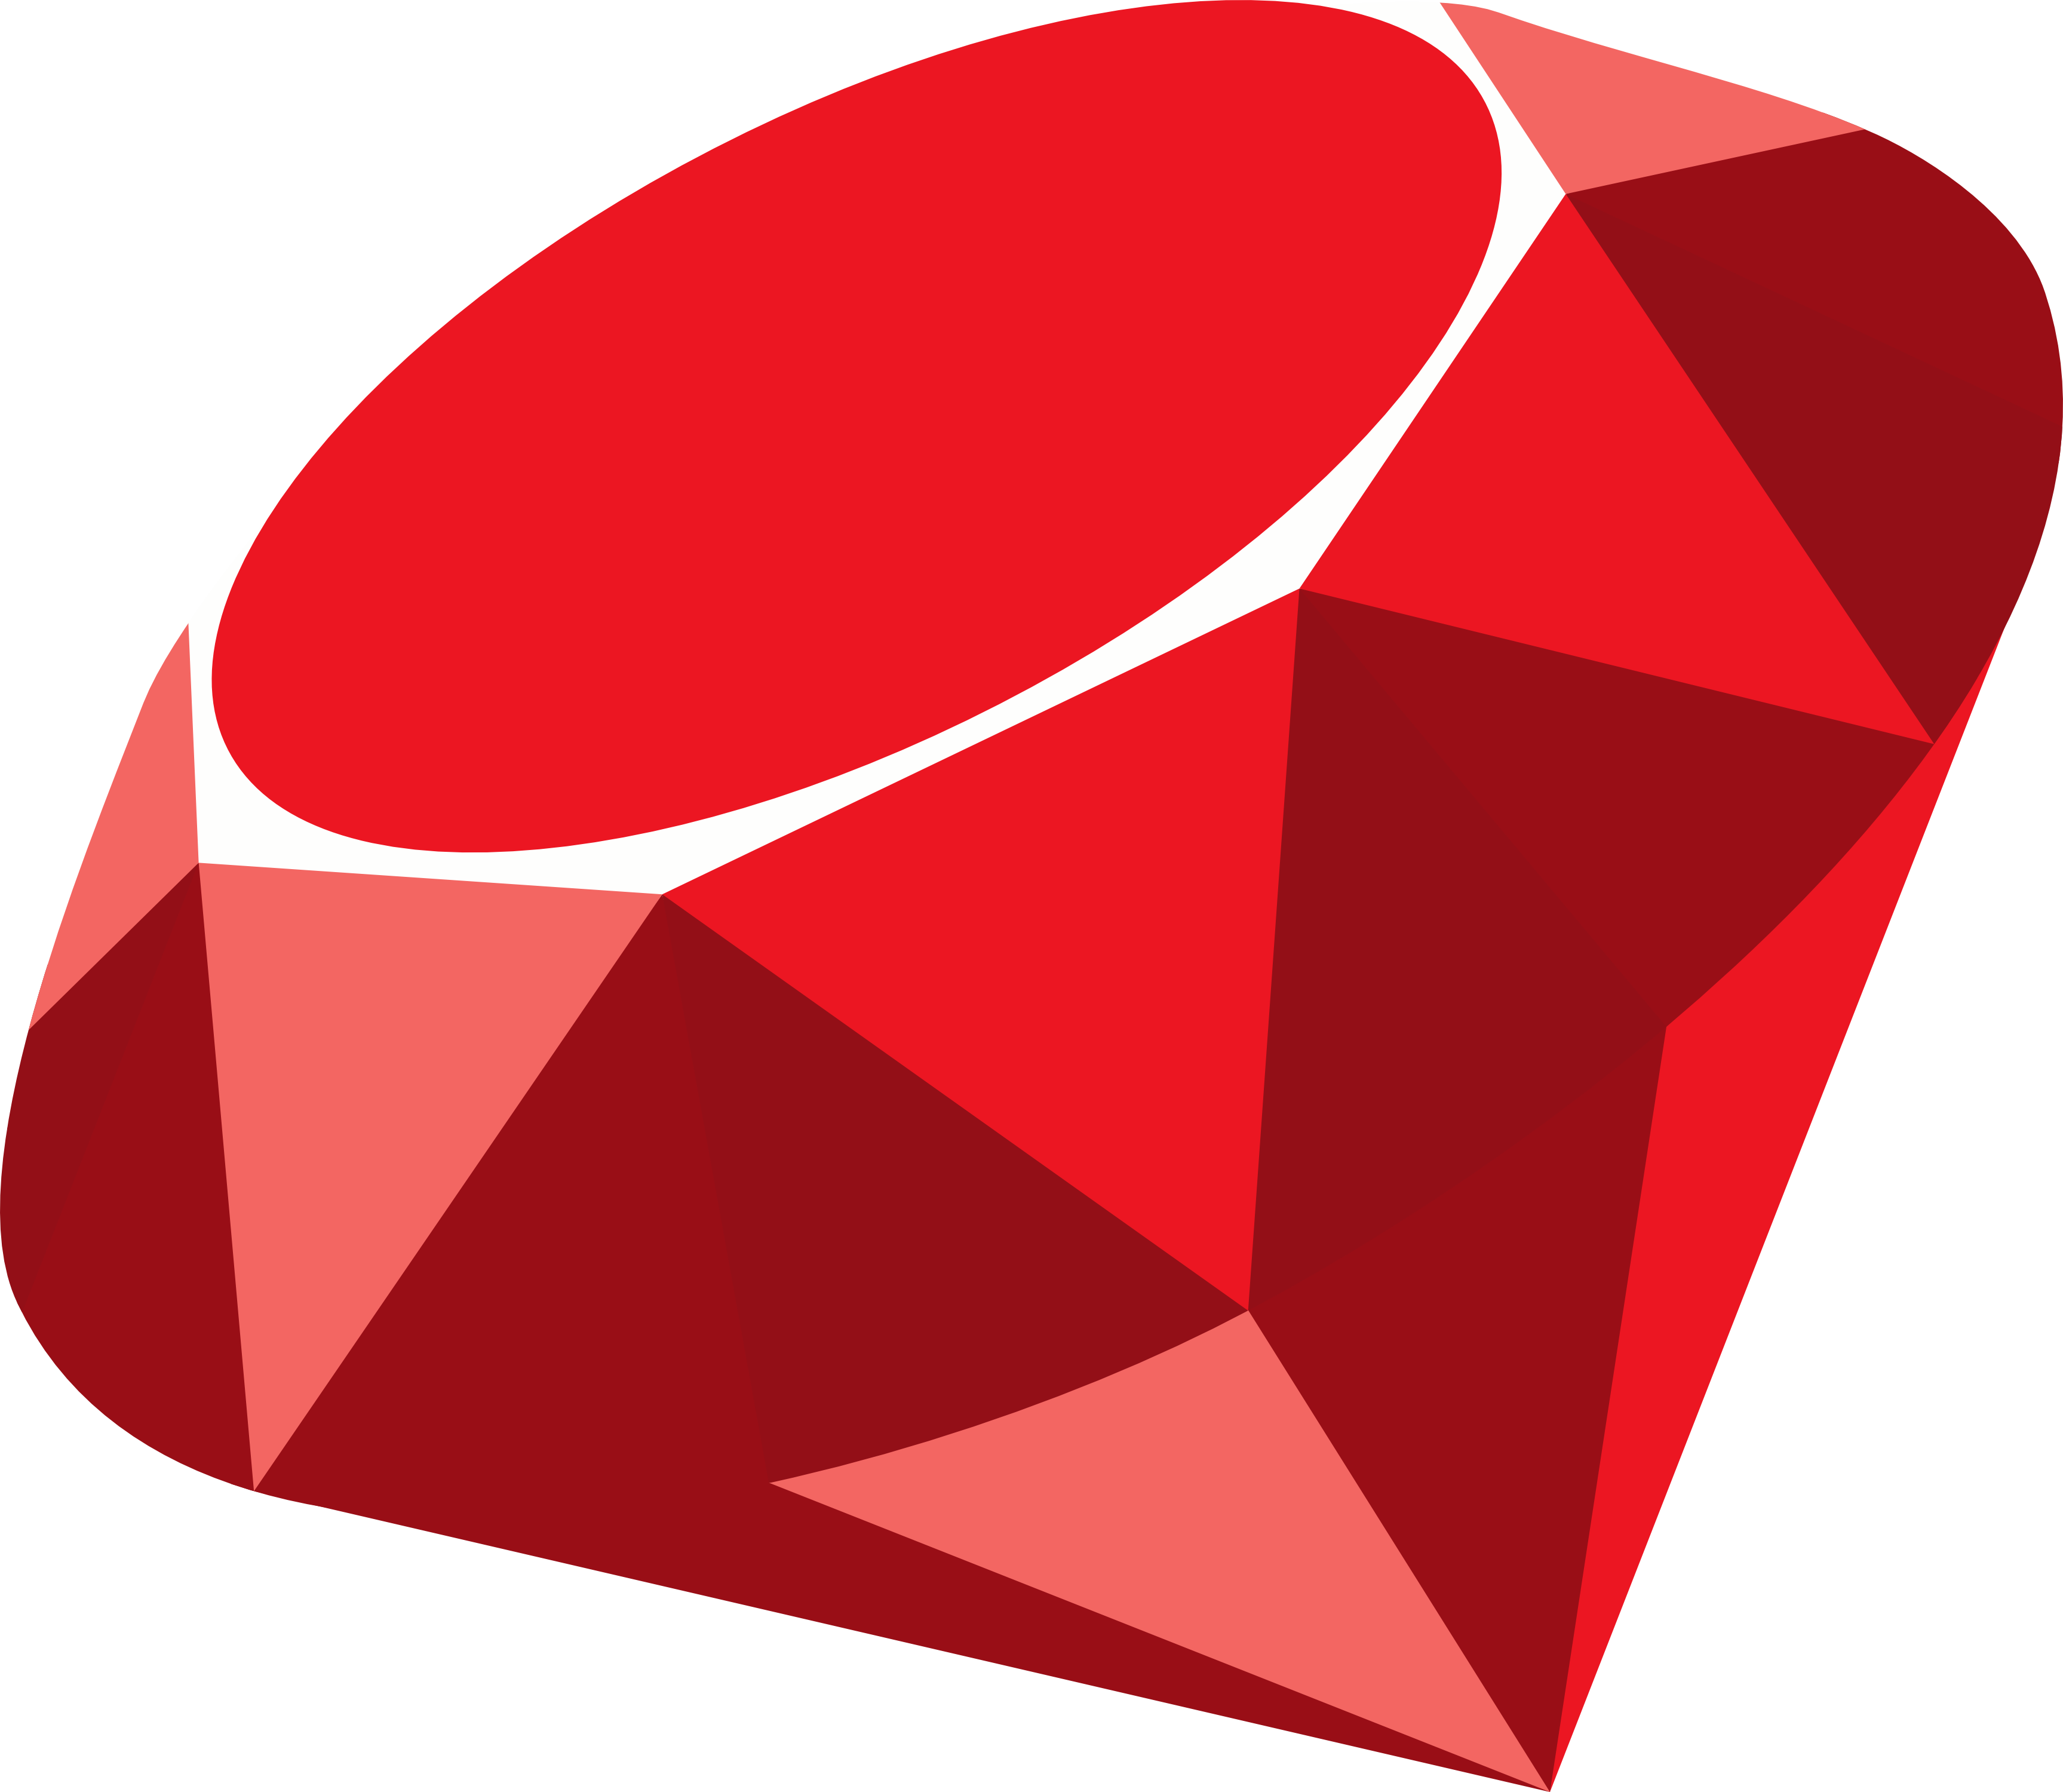 Ruby clipart emerald #5